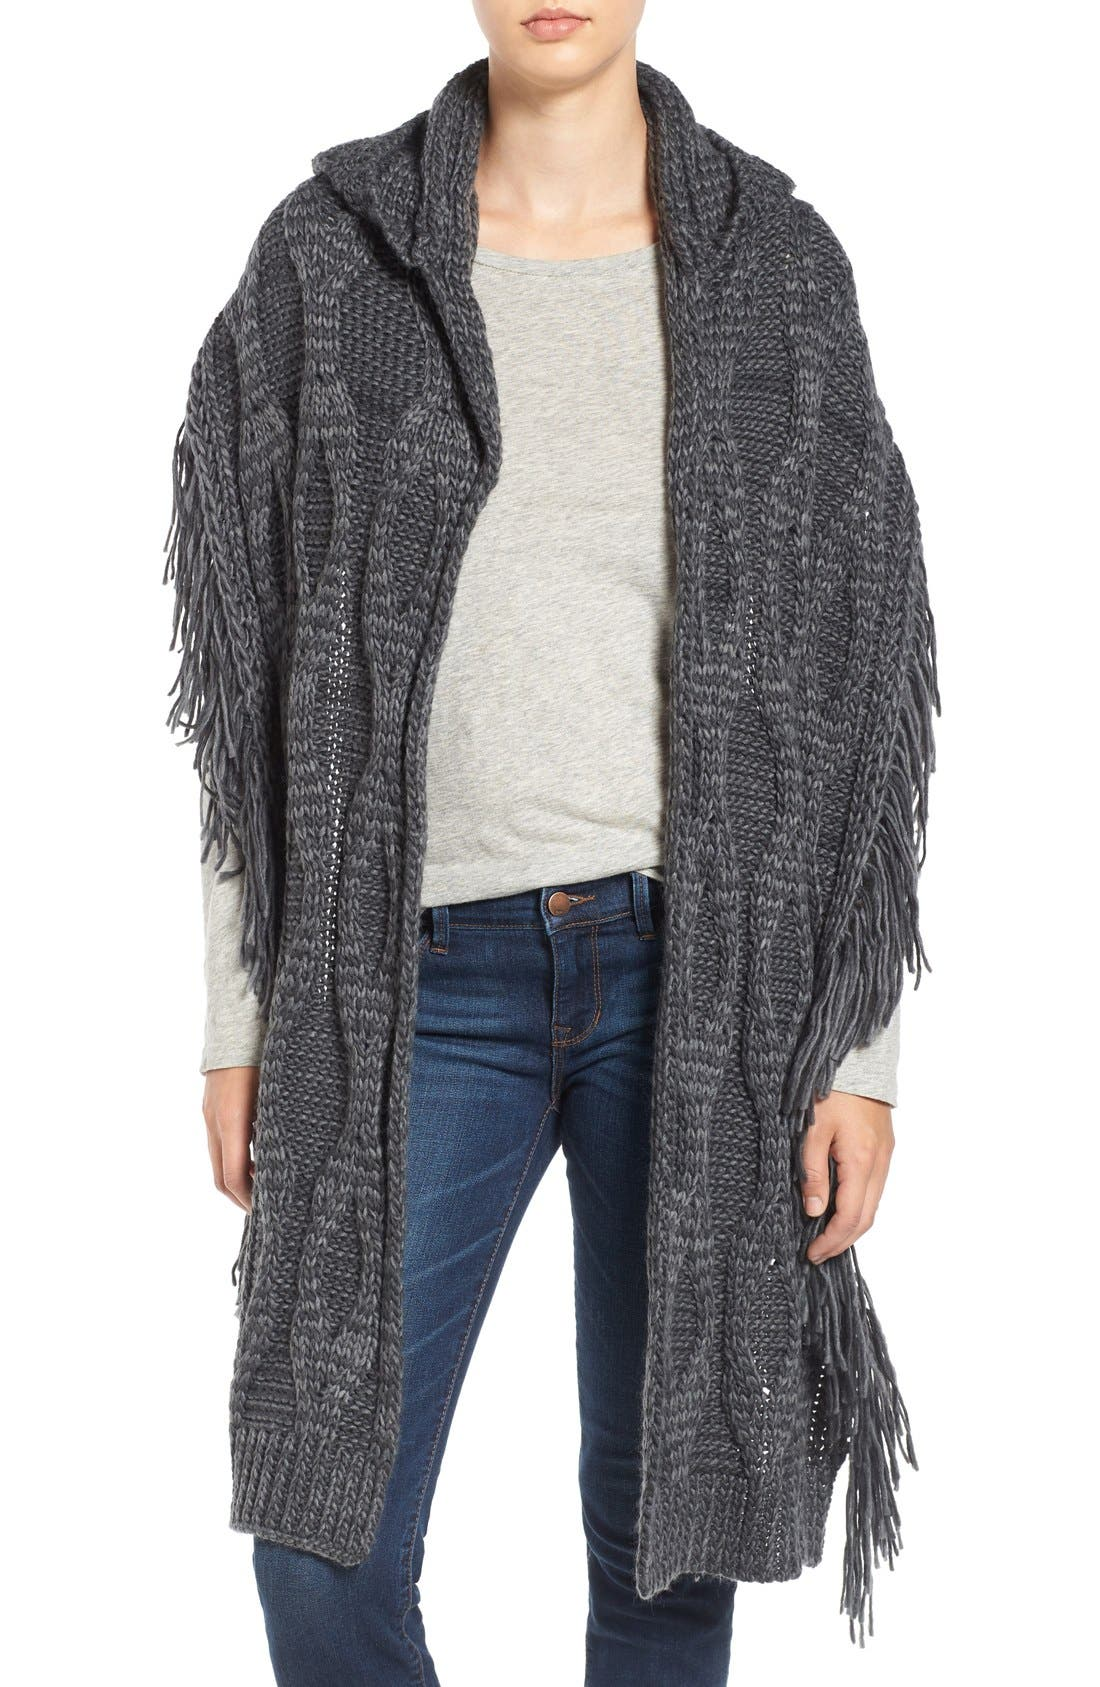 Alternate Image 1 Selected - Free People Hooded Cable Knit Wrap